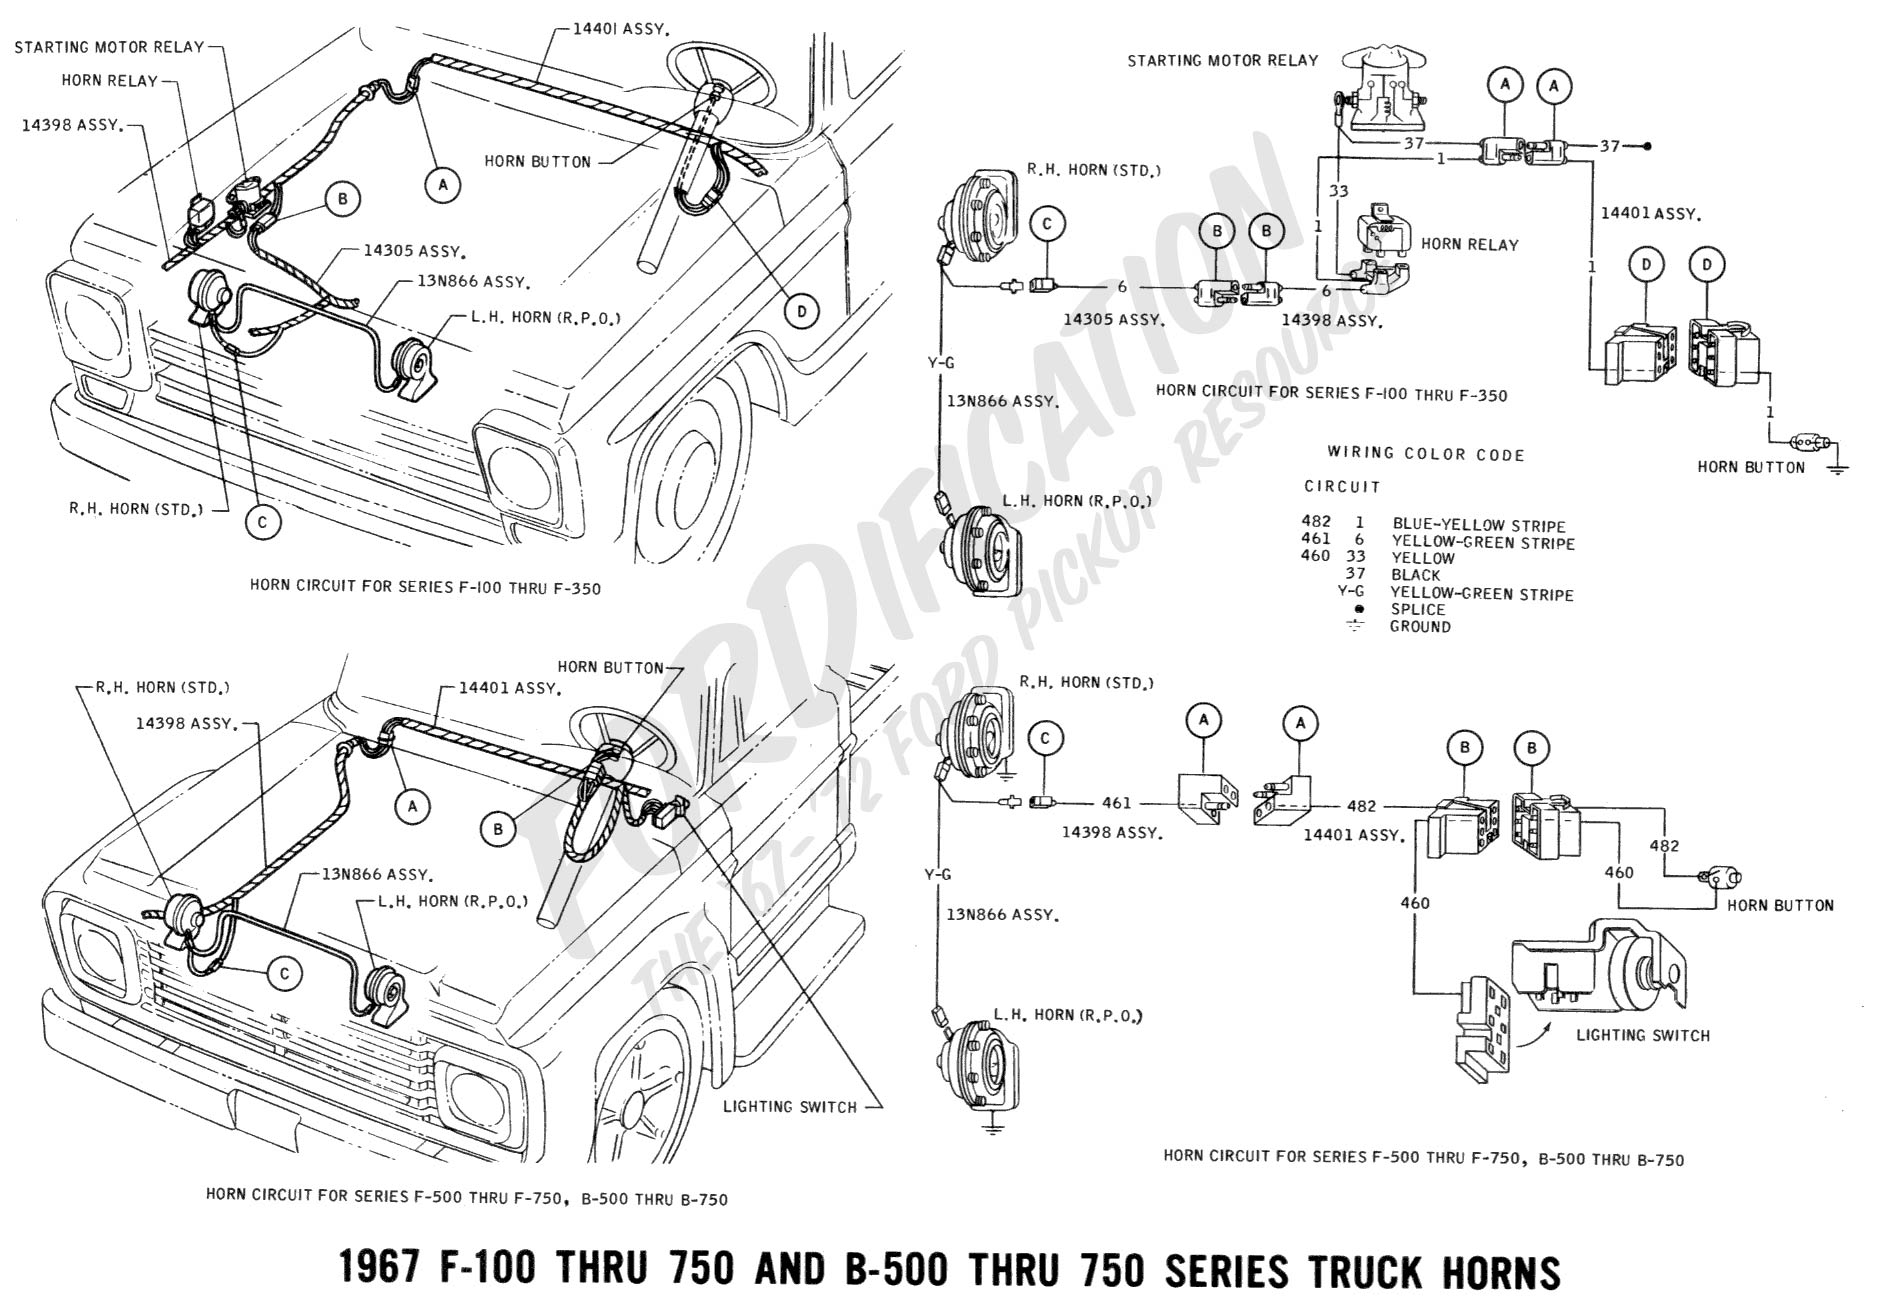 72 ford f100 dash wiring diagram cb400 vtec truck technical drawings and schematics section h